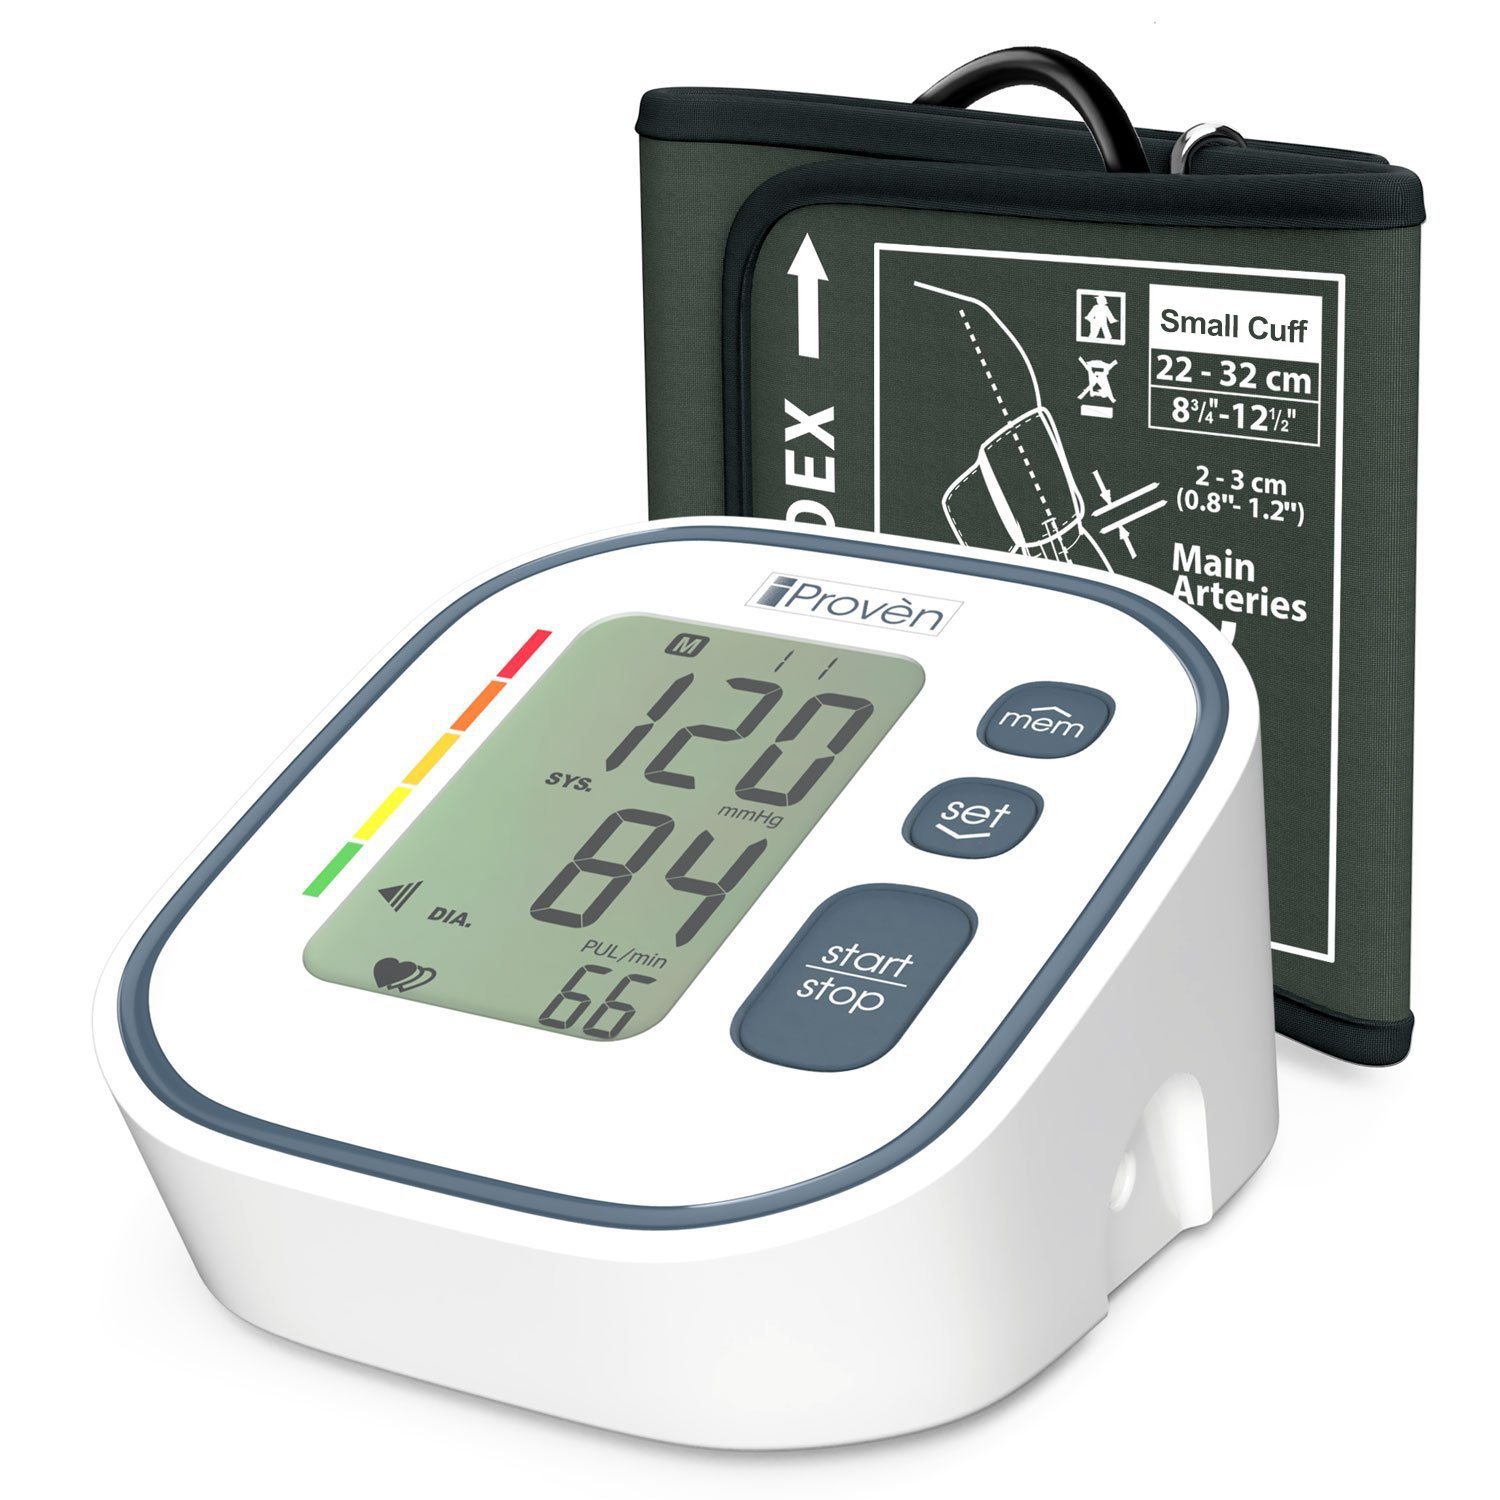 Digital Automatic Blood Pressure Monitor - Upper Arm Cuff (Medium Cuff) - Large Screen Display - Clinically Accurate & Fast Reading - FDA Approved - BPM-634 by iProvèn